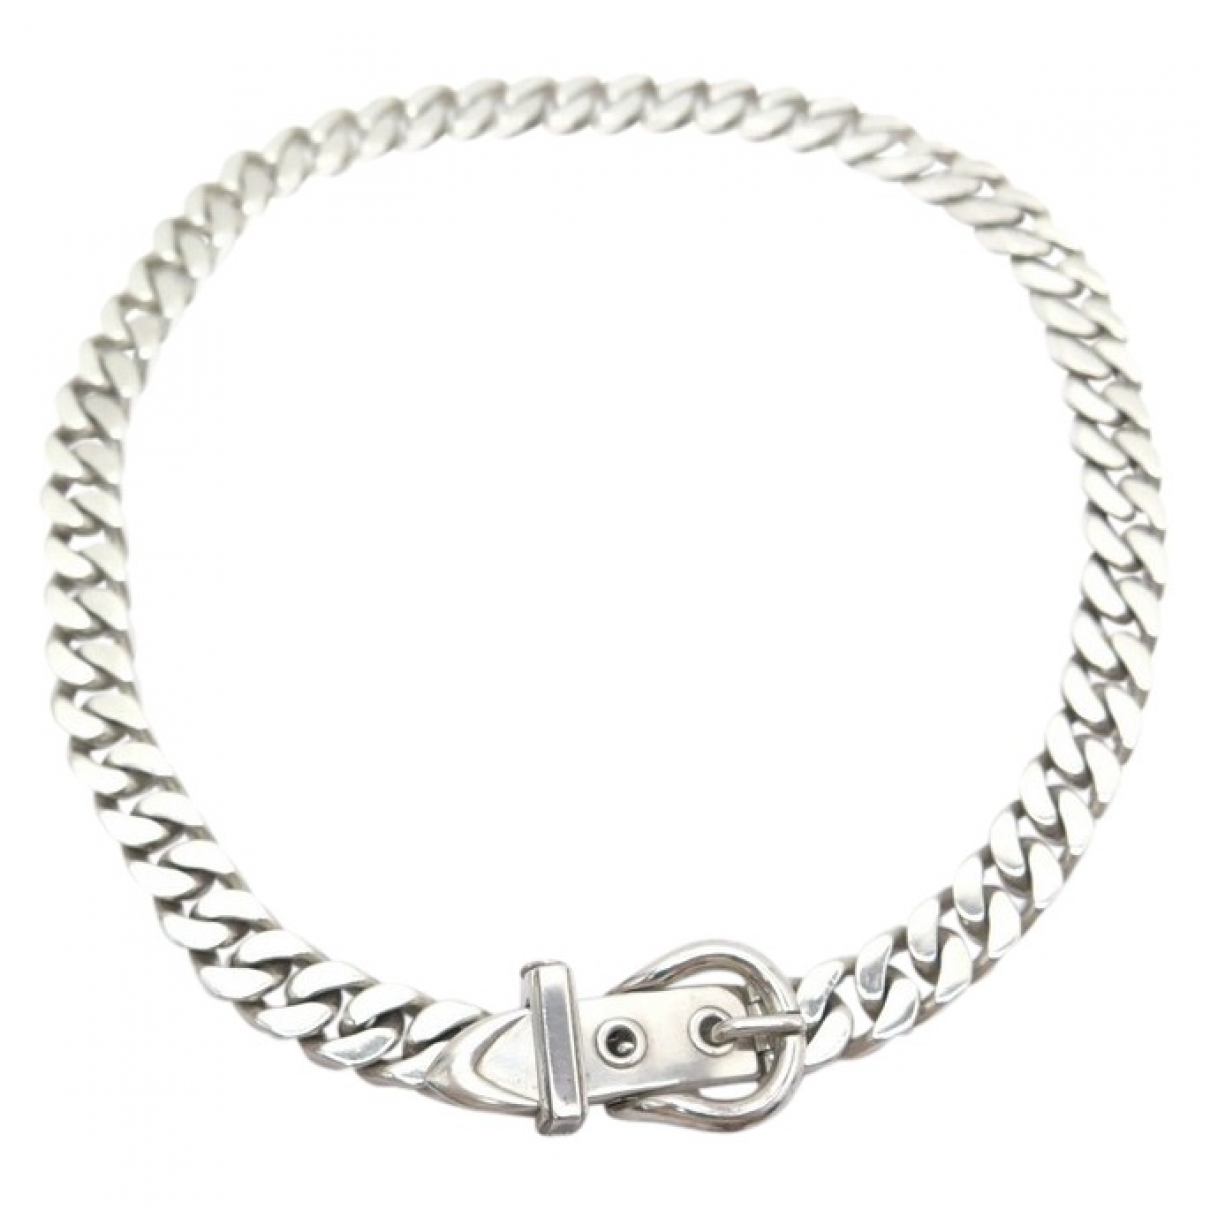 Hermès Ceinture Silver Silver necklace for Women N